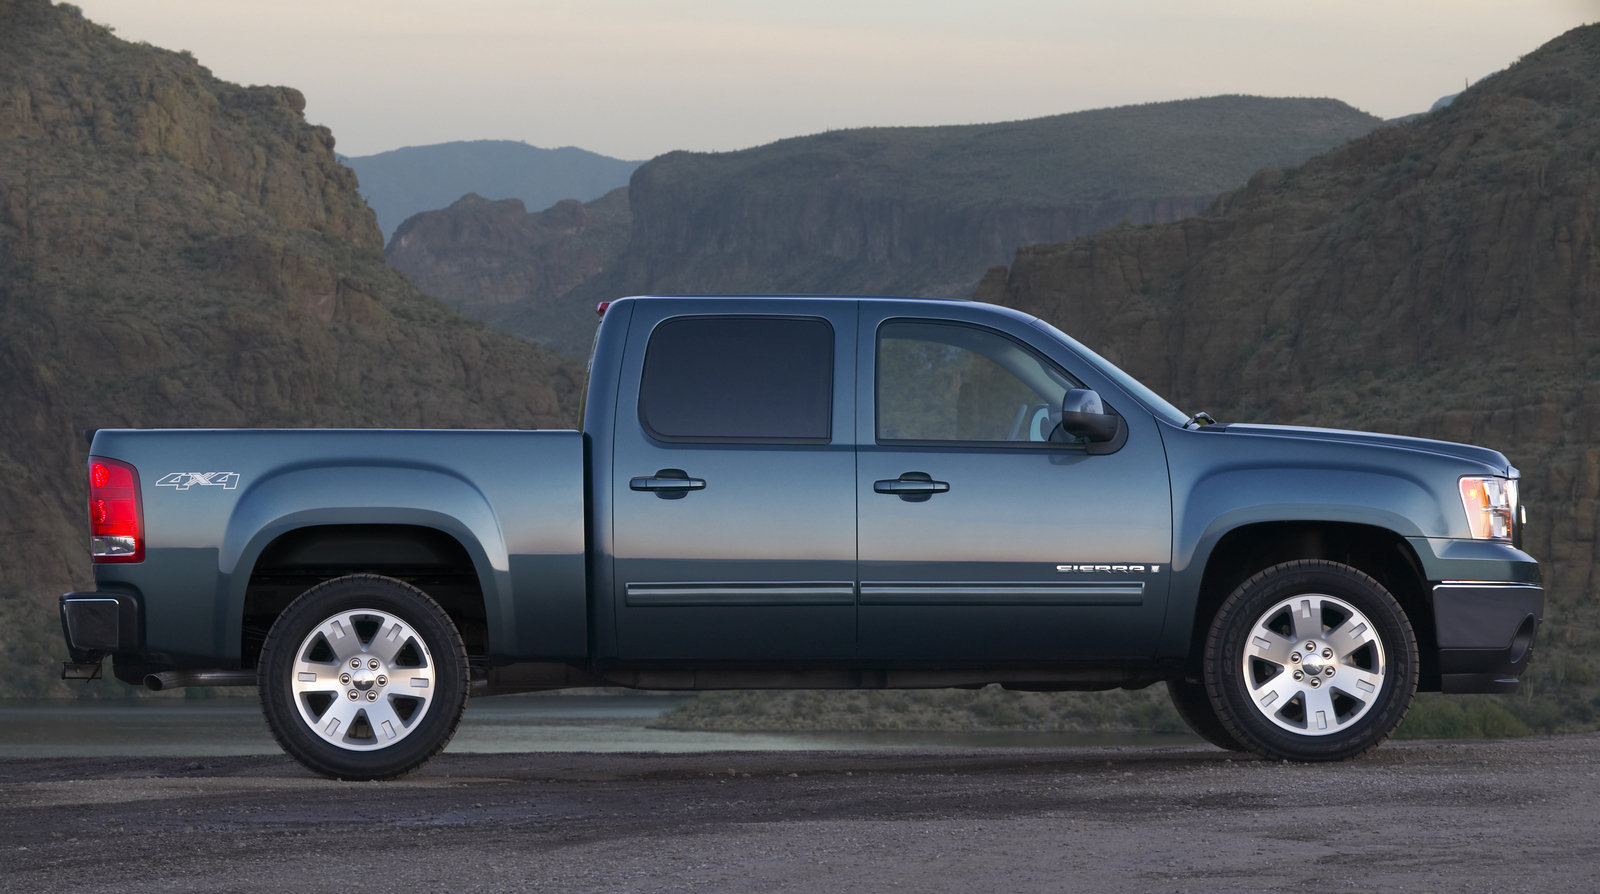 2007 gmc sierra picture 90635 car review top speed. Black Bedroom Furniture Sets. Home Design Ideas